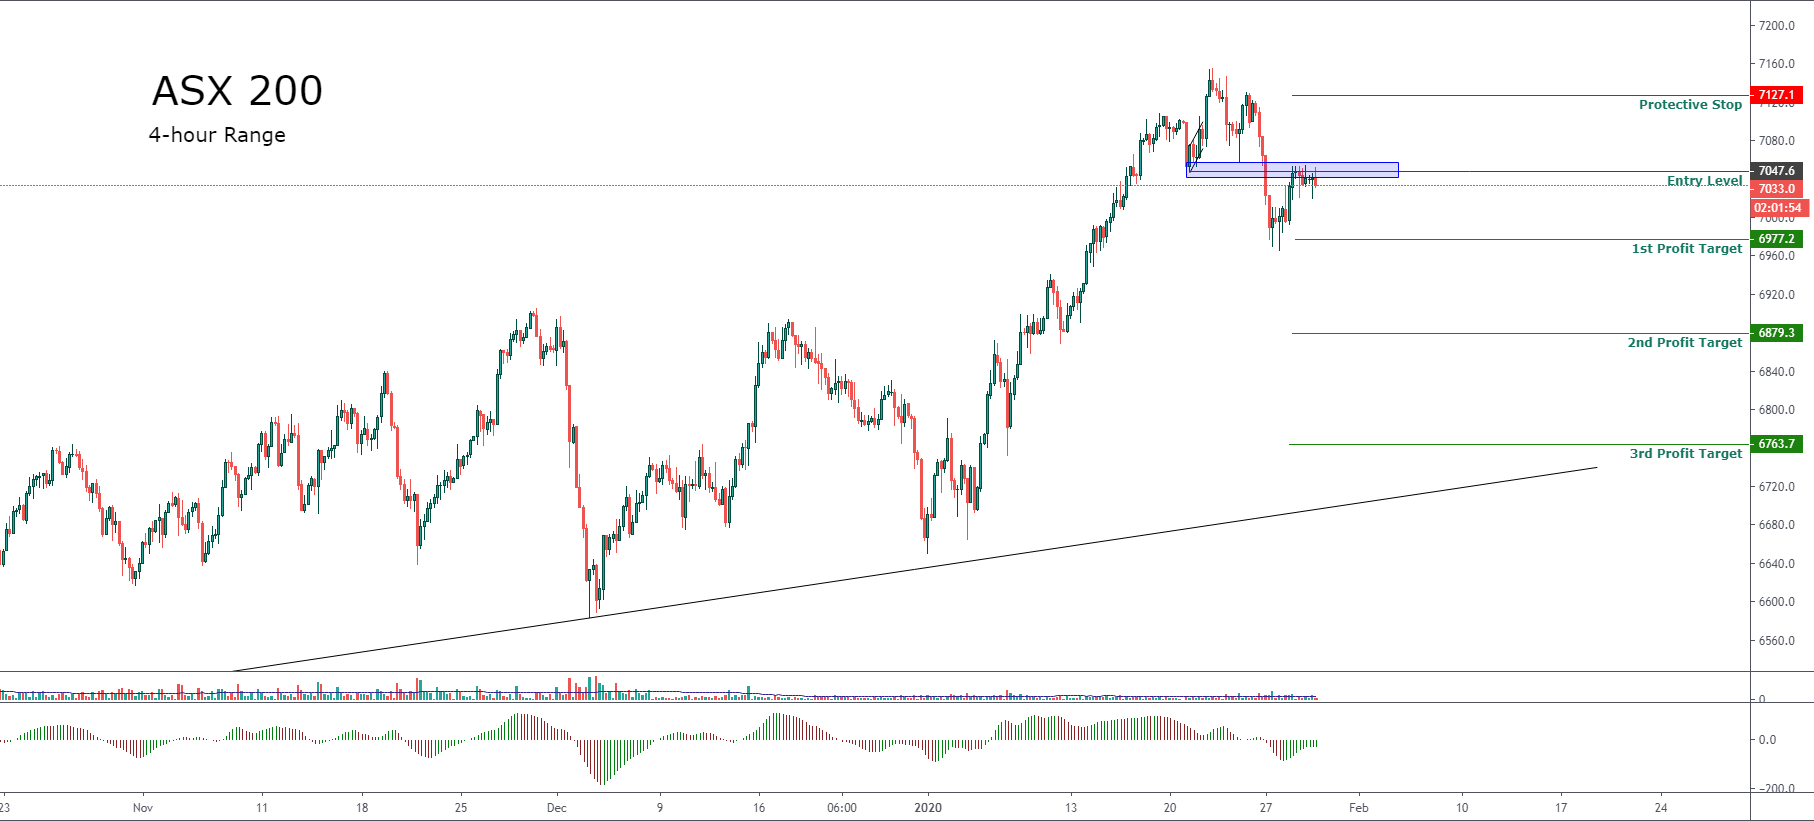 Asx 200 Traders Take Placed Their Eyes At The Recent Breakdown